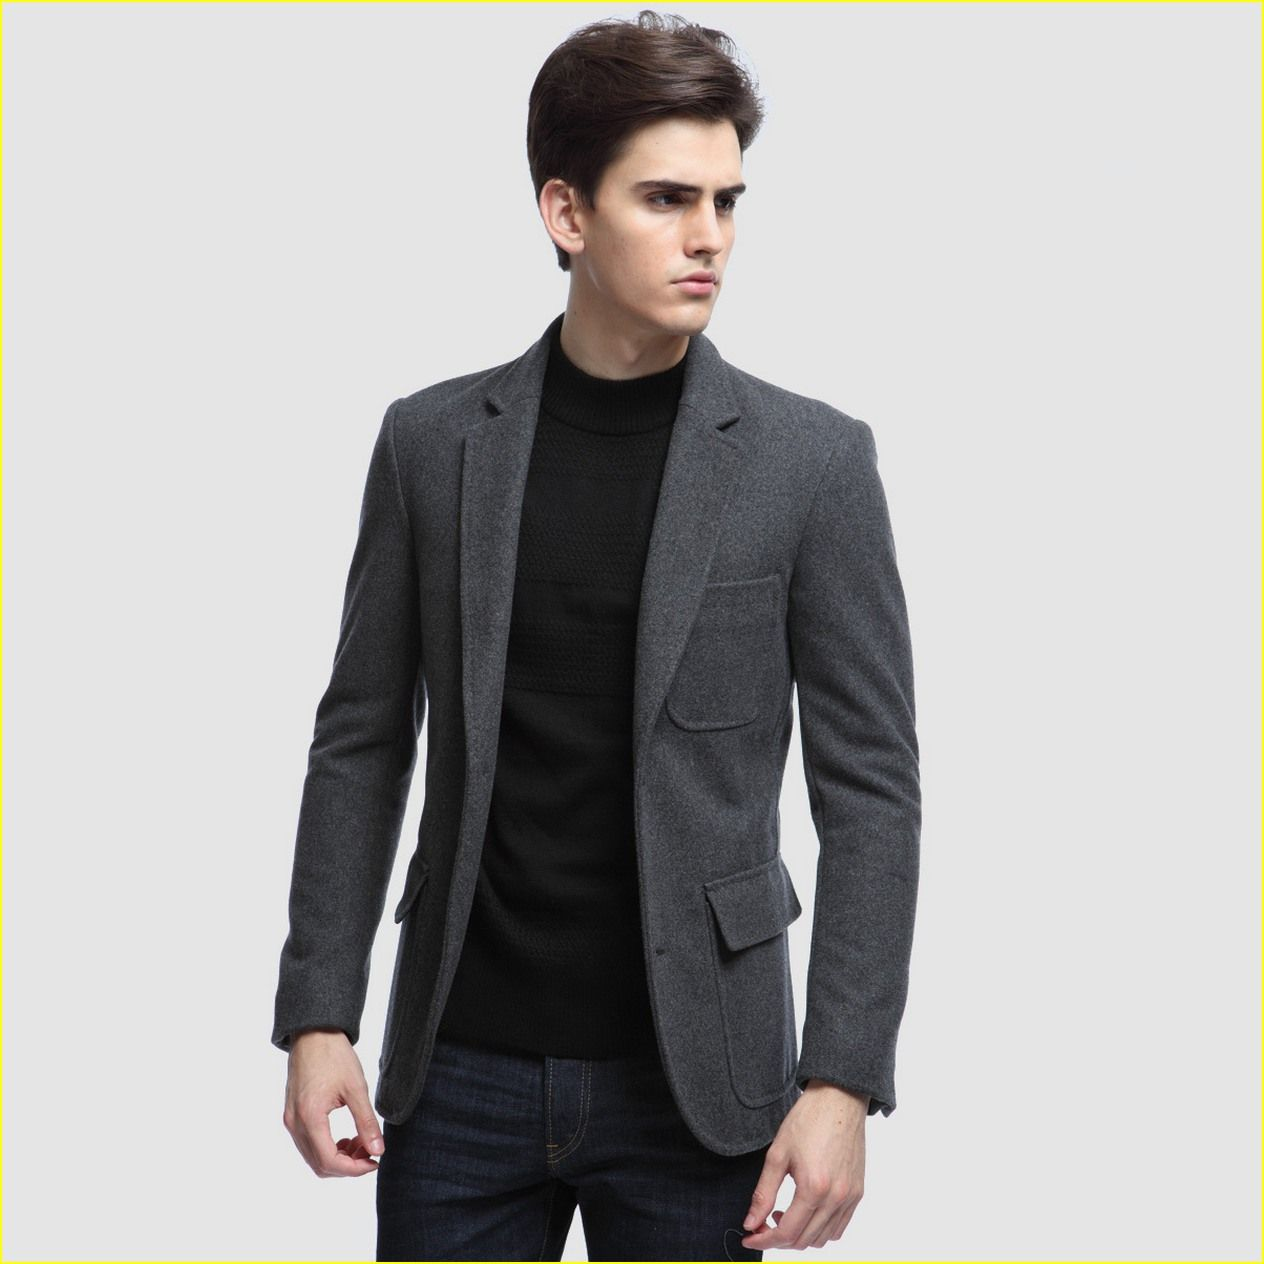 Best Looking for Mens Casual Suits Ideas | Mens casual suits ...